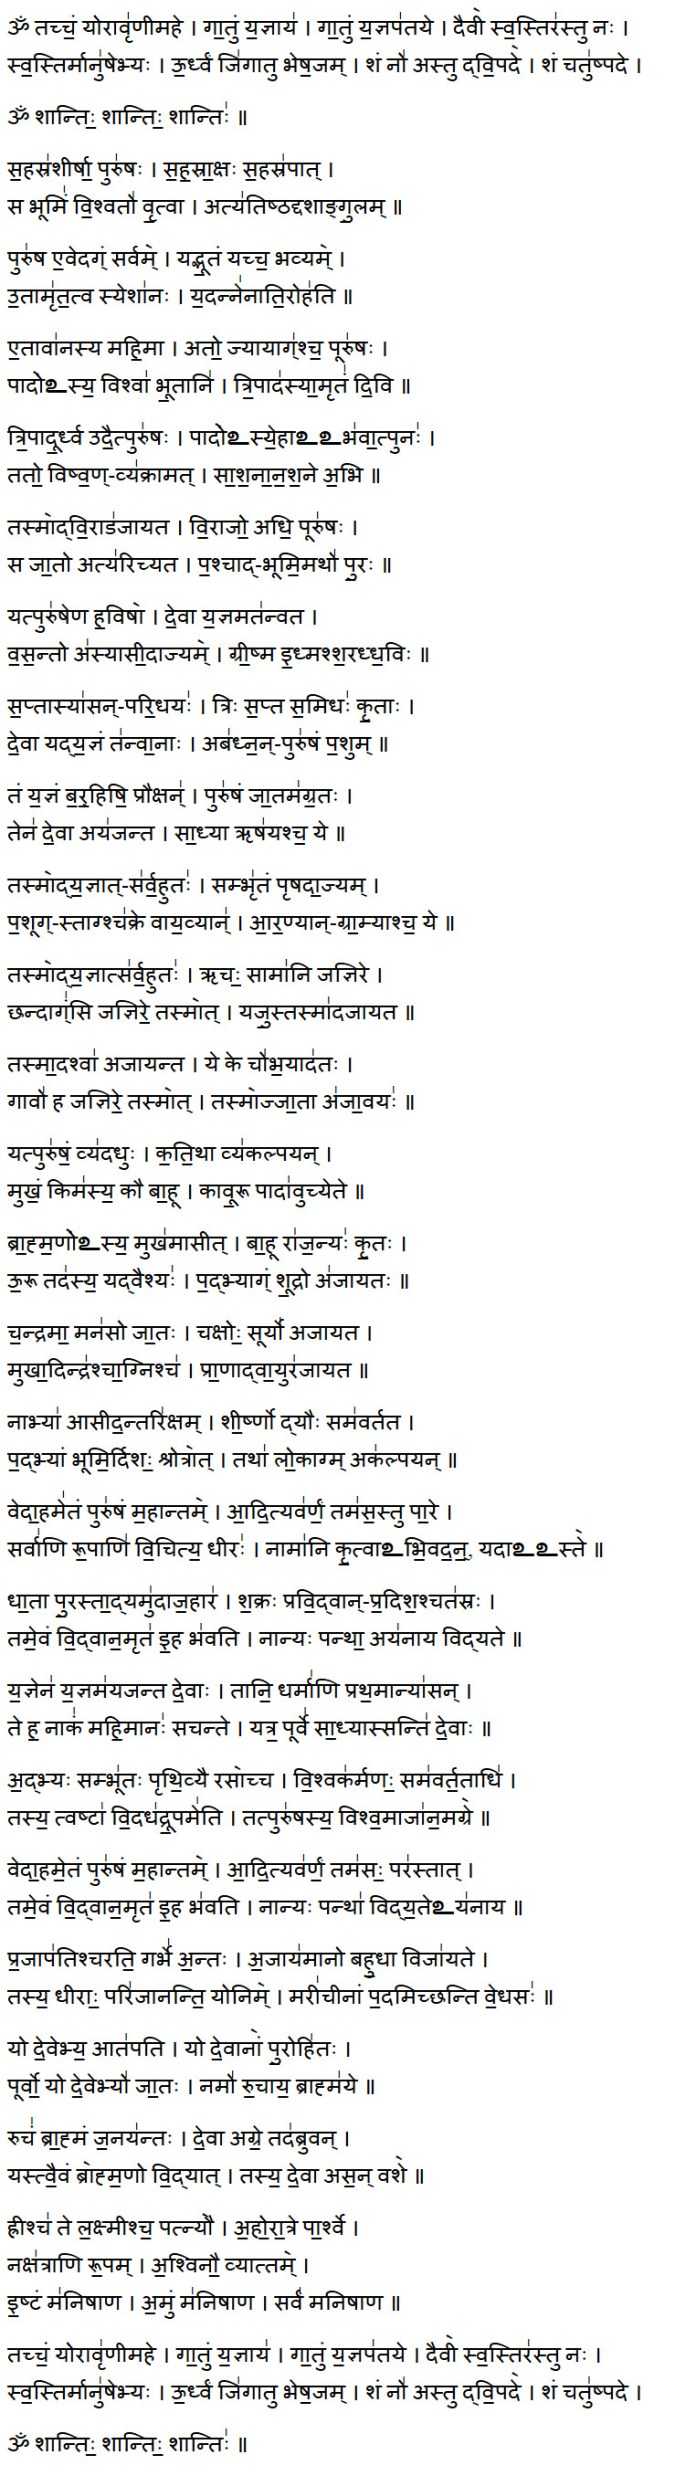 purusha suktam lyrics in sanskrit